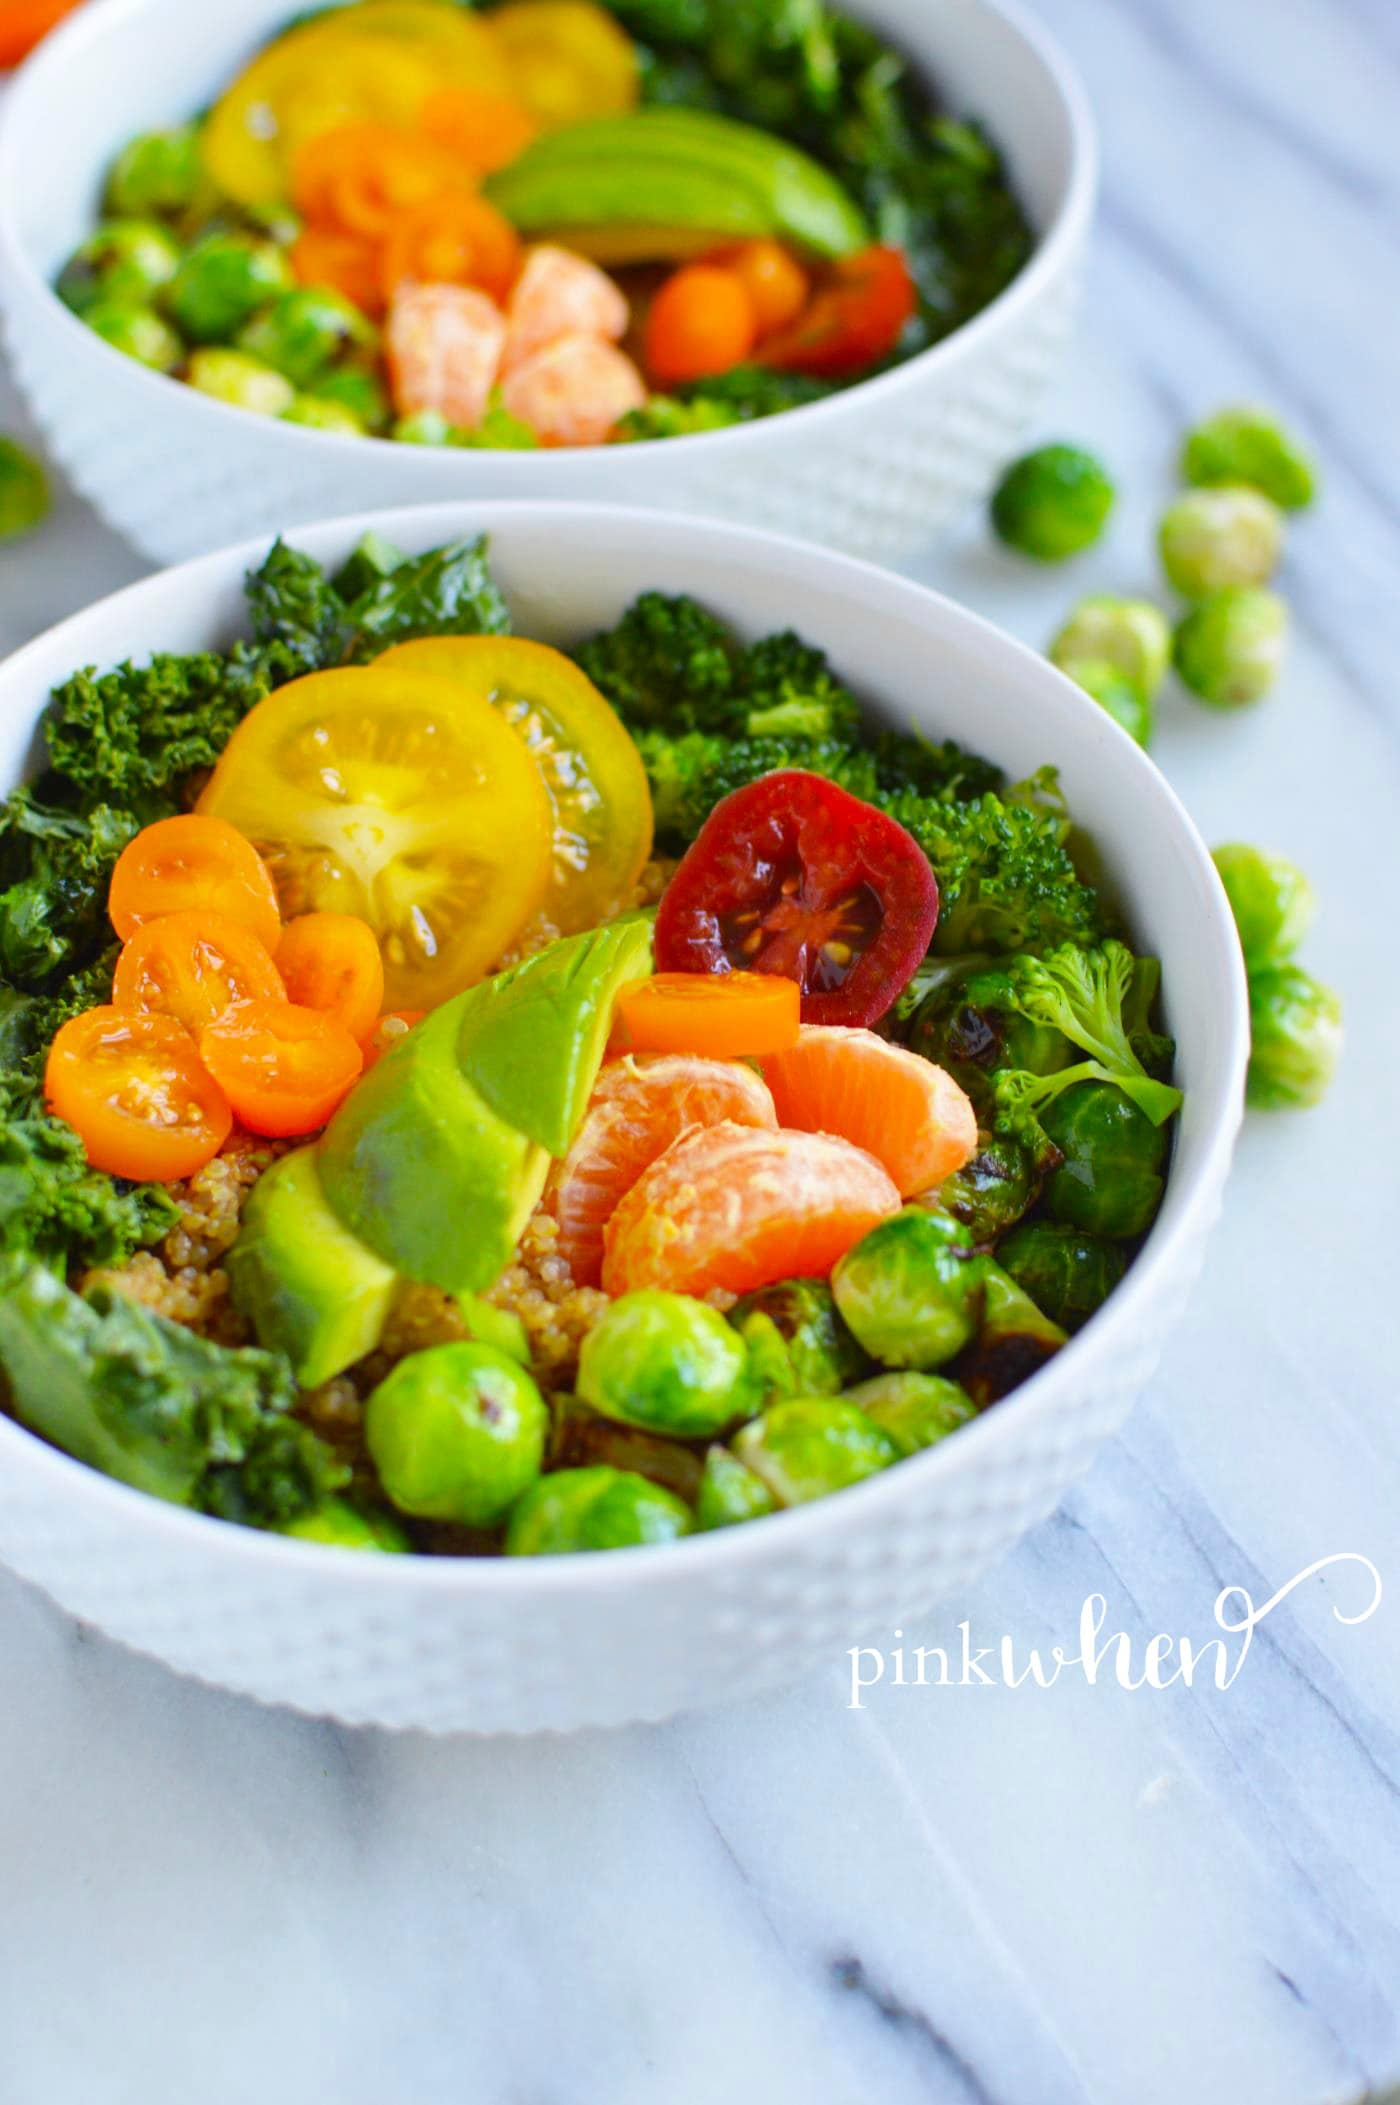 Have you made Quinoa in the Instant Pot? These Instant Pot Quinoa Grain Bowls are amazing, and full of protein, fruits, and vegetables. Healthy and good!